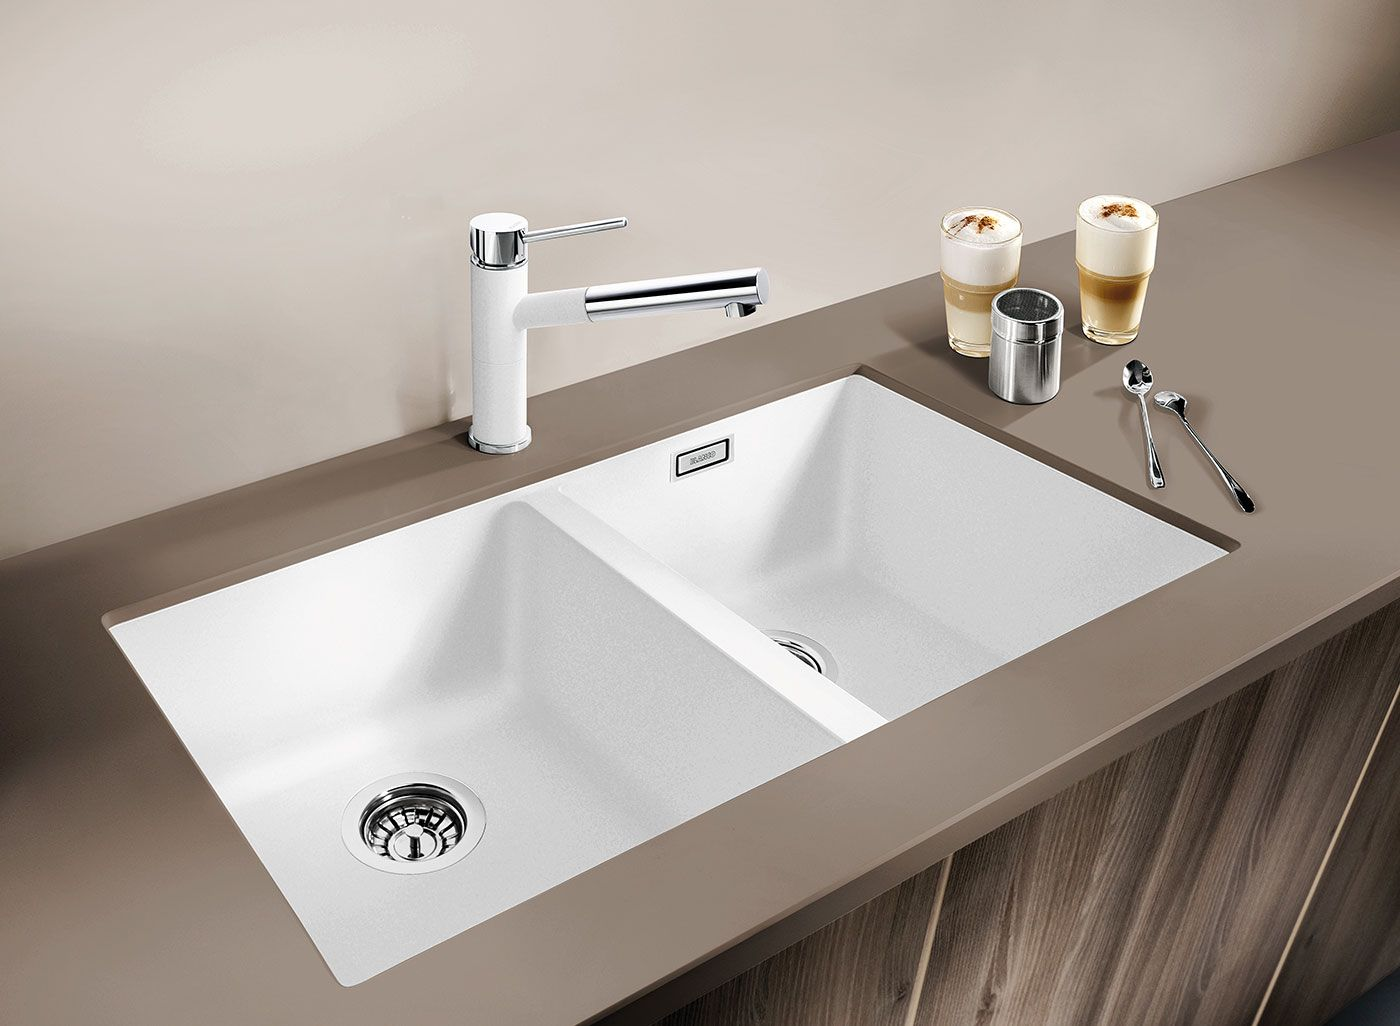 Silgranit Double Bowl Undermount Sink White Cooks Plumbing 9610 Pauldryden Co